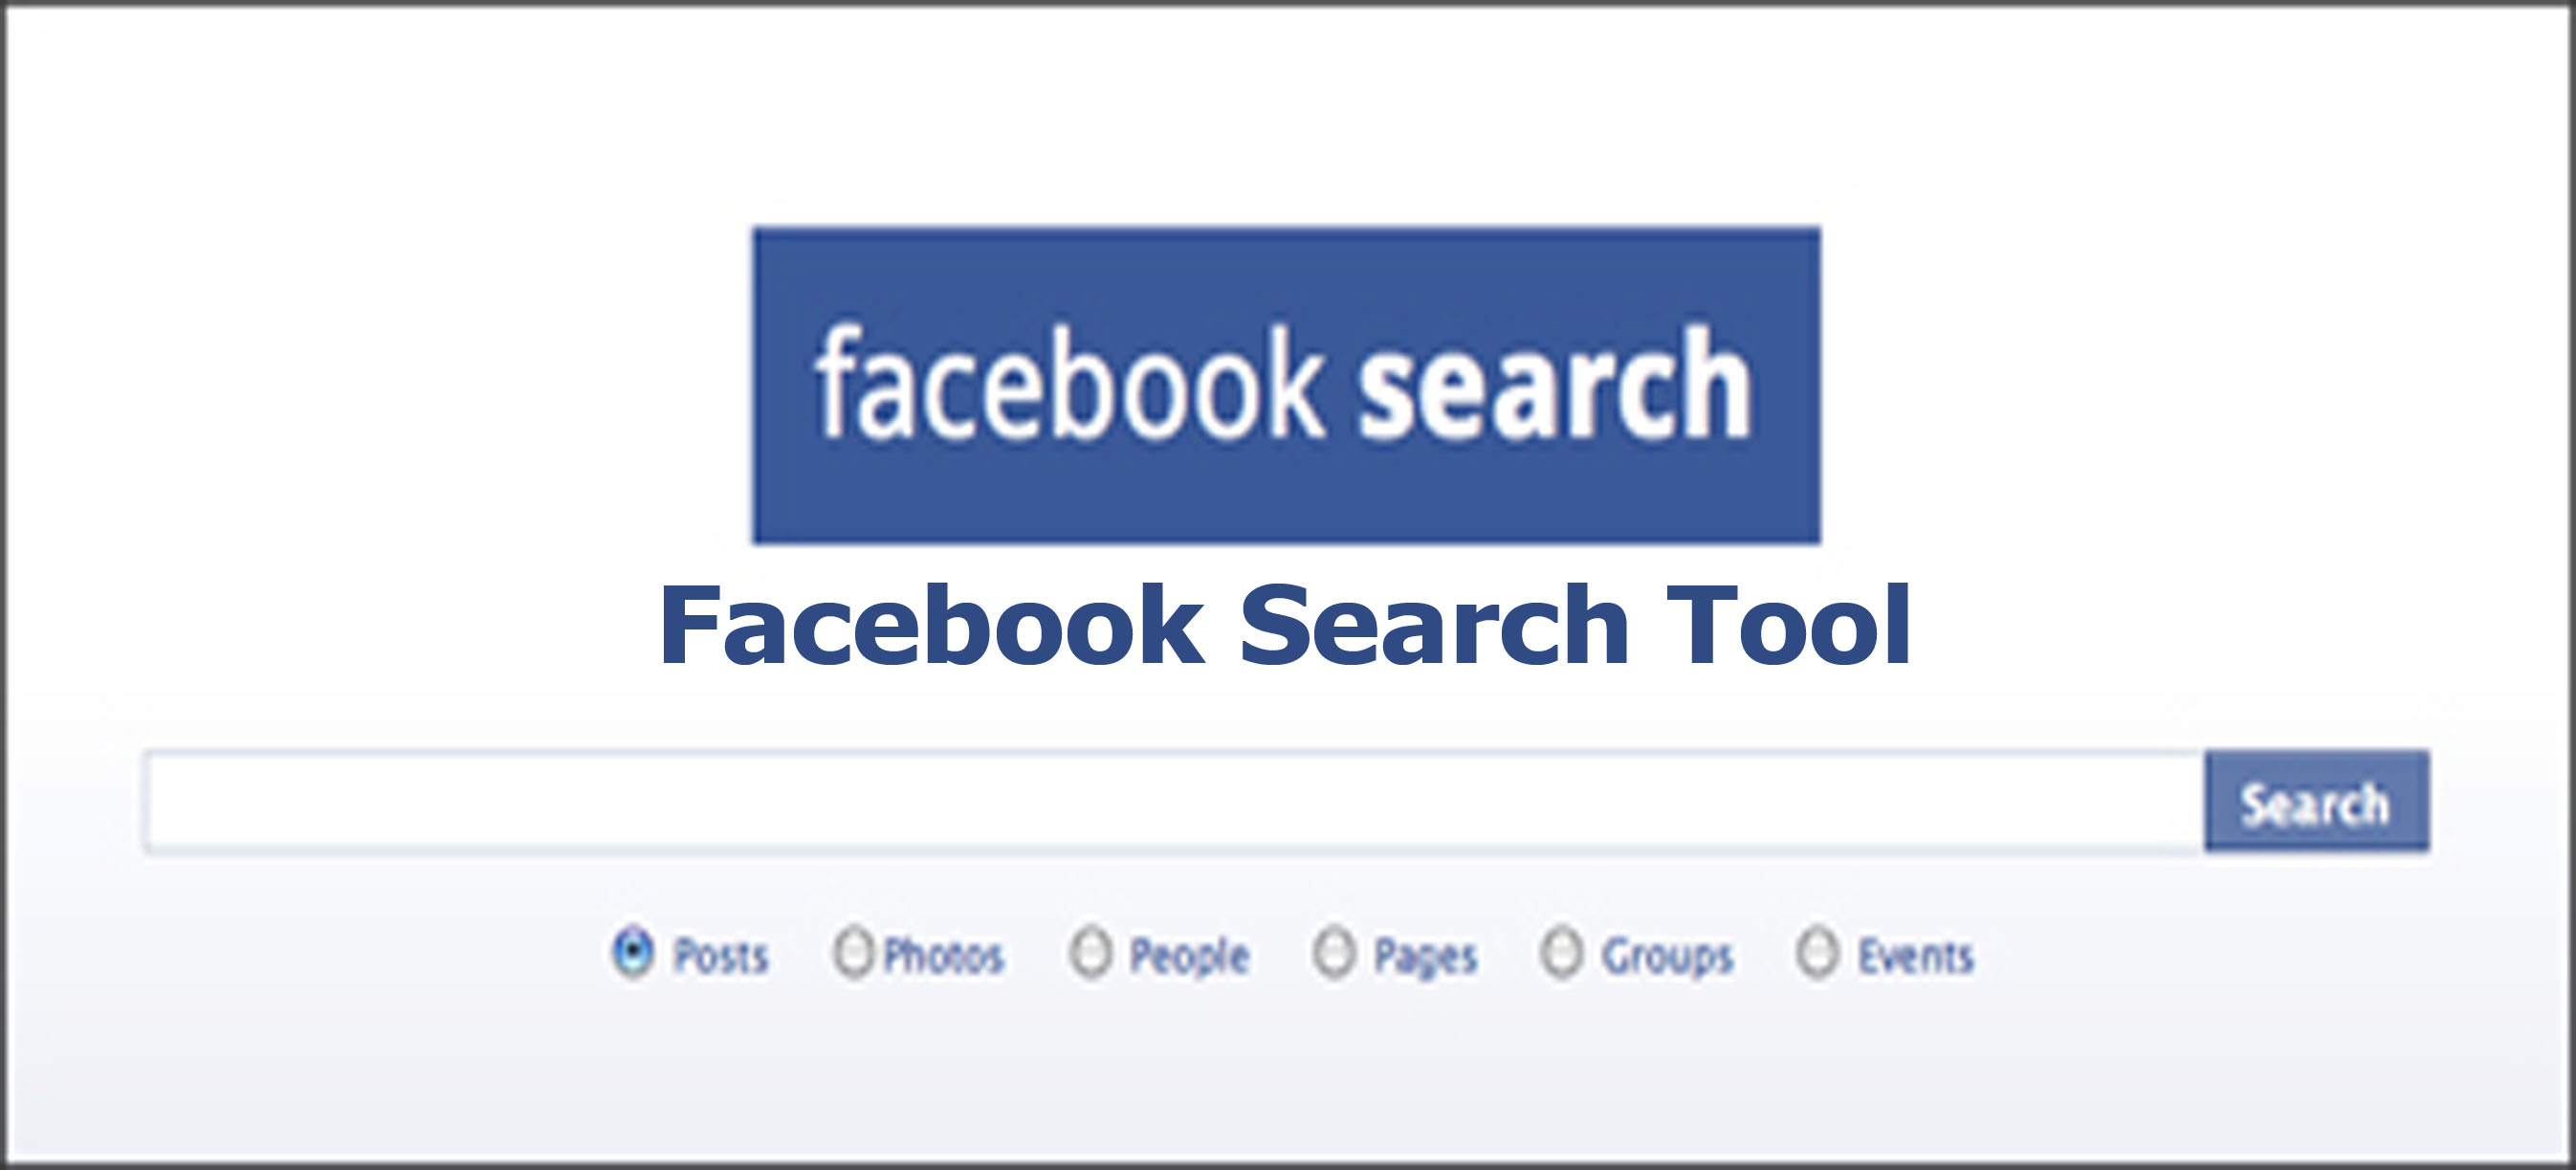 Facebook Search Tool